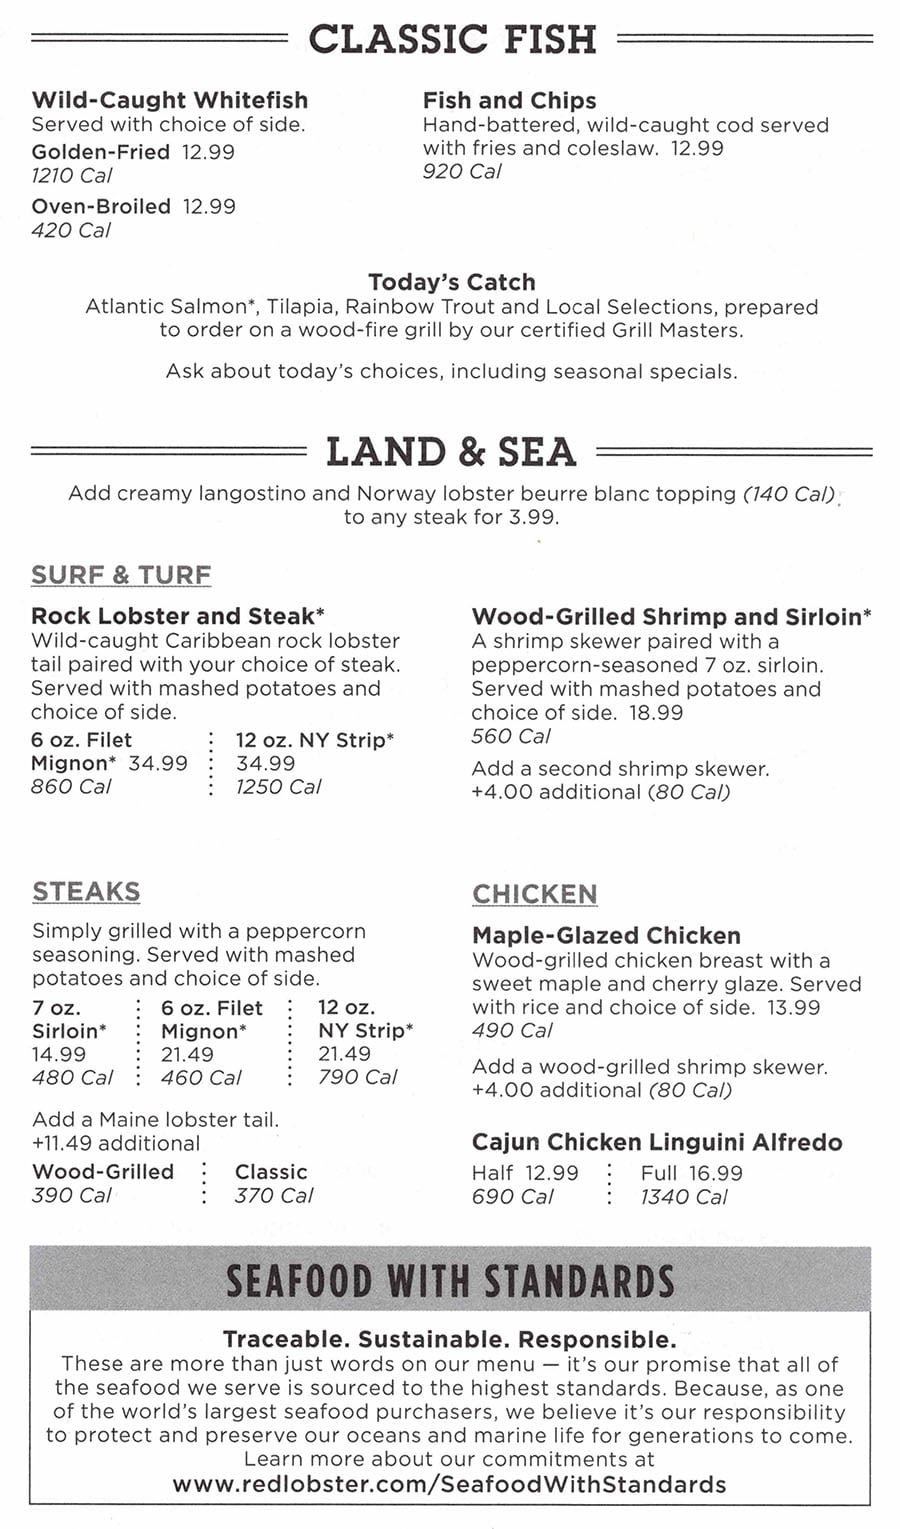 Red Lobster menu - classic fish, land and sea